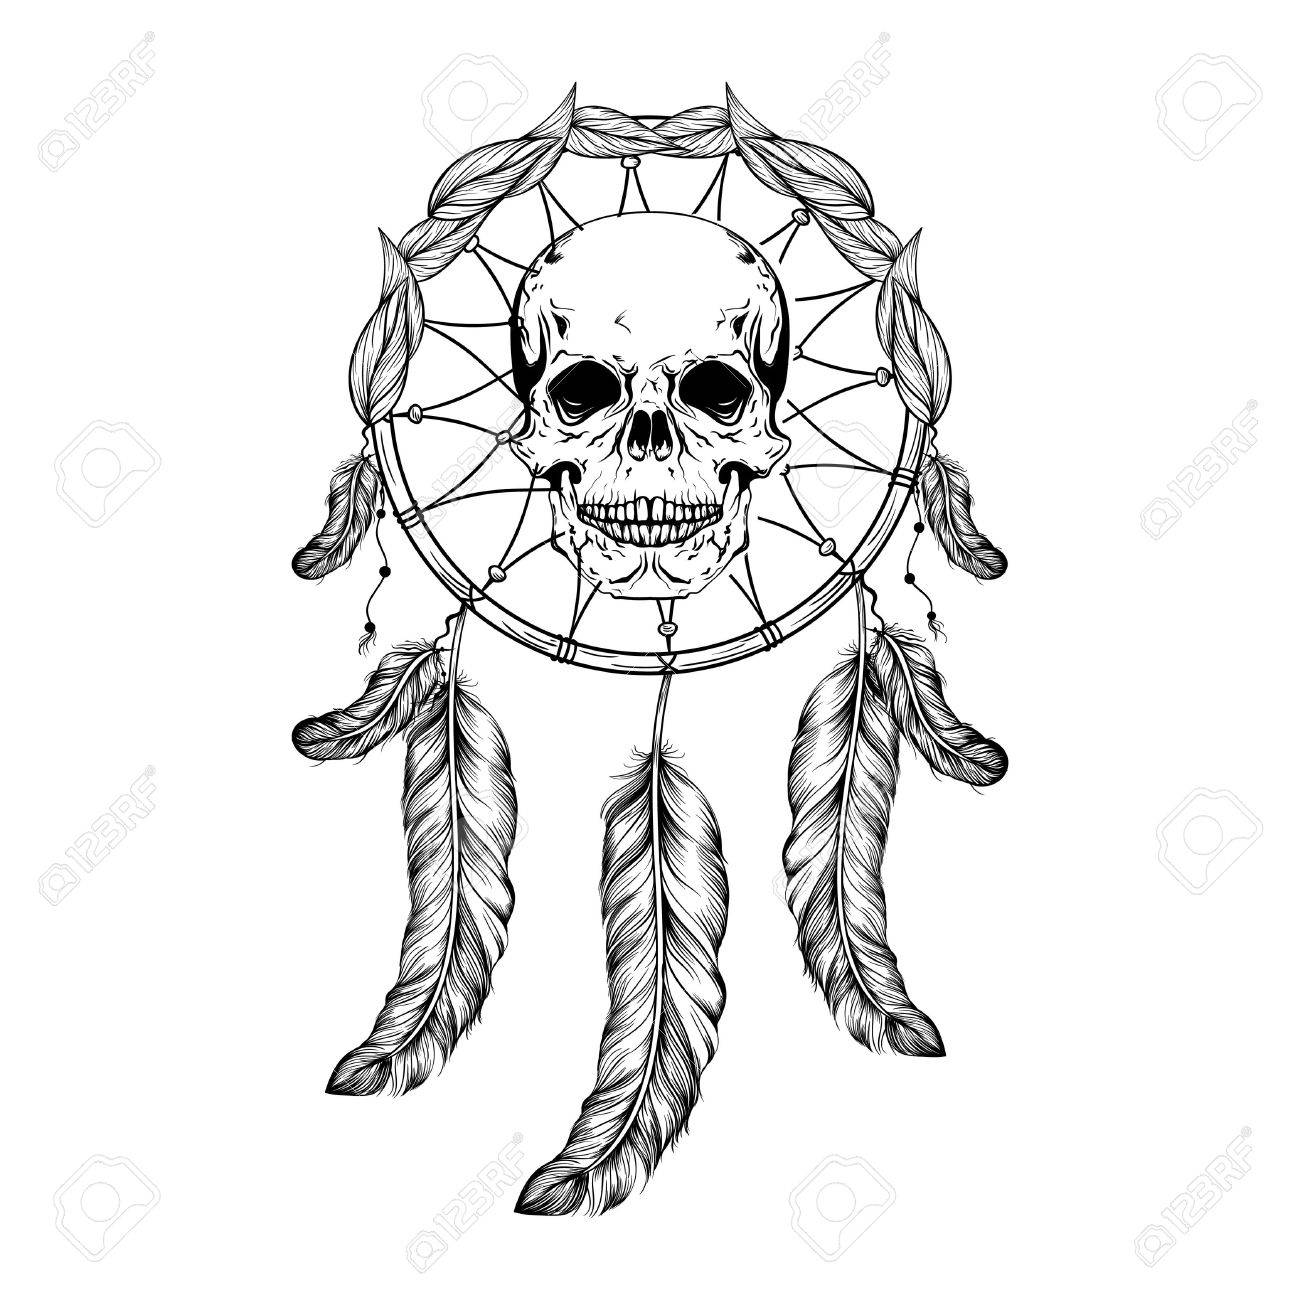 1300x1300 Dream Catcher With Feathers And Leafs, Skull Center Maden